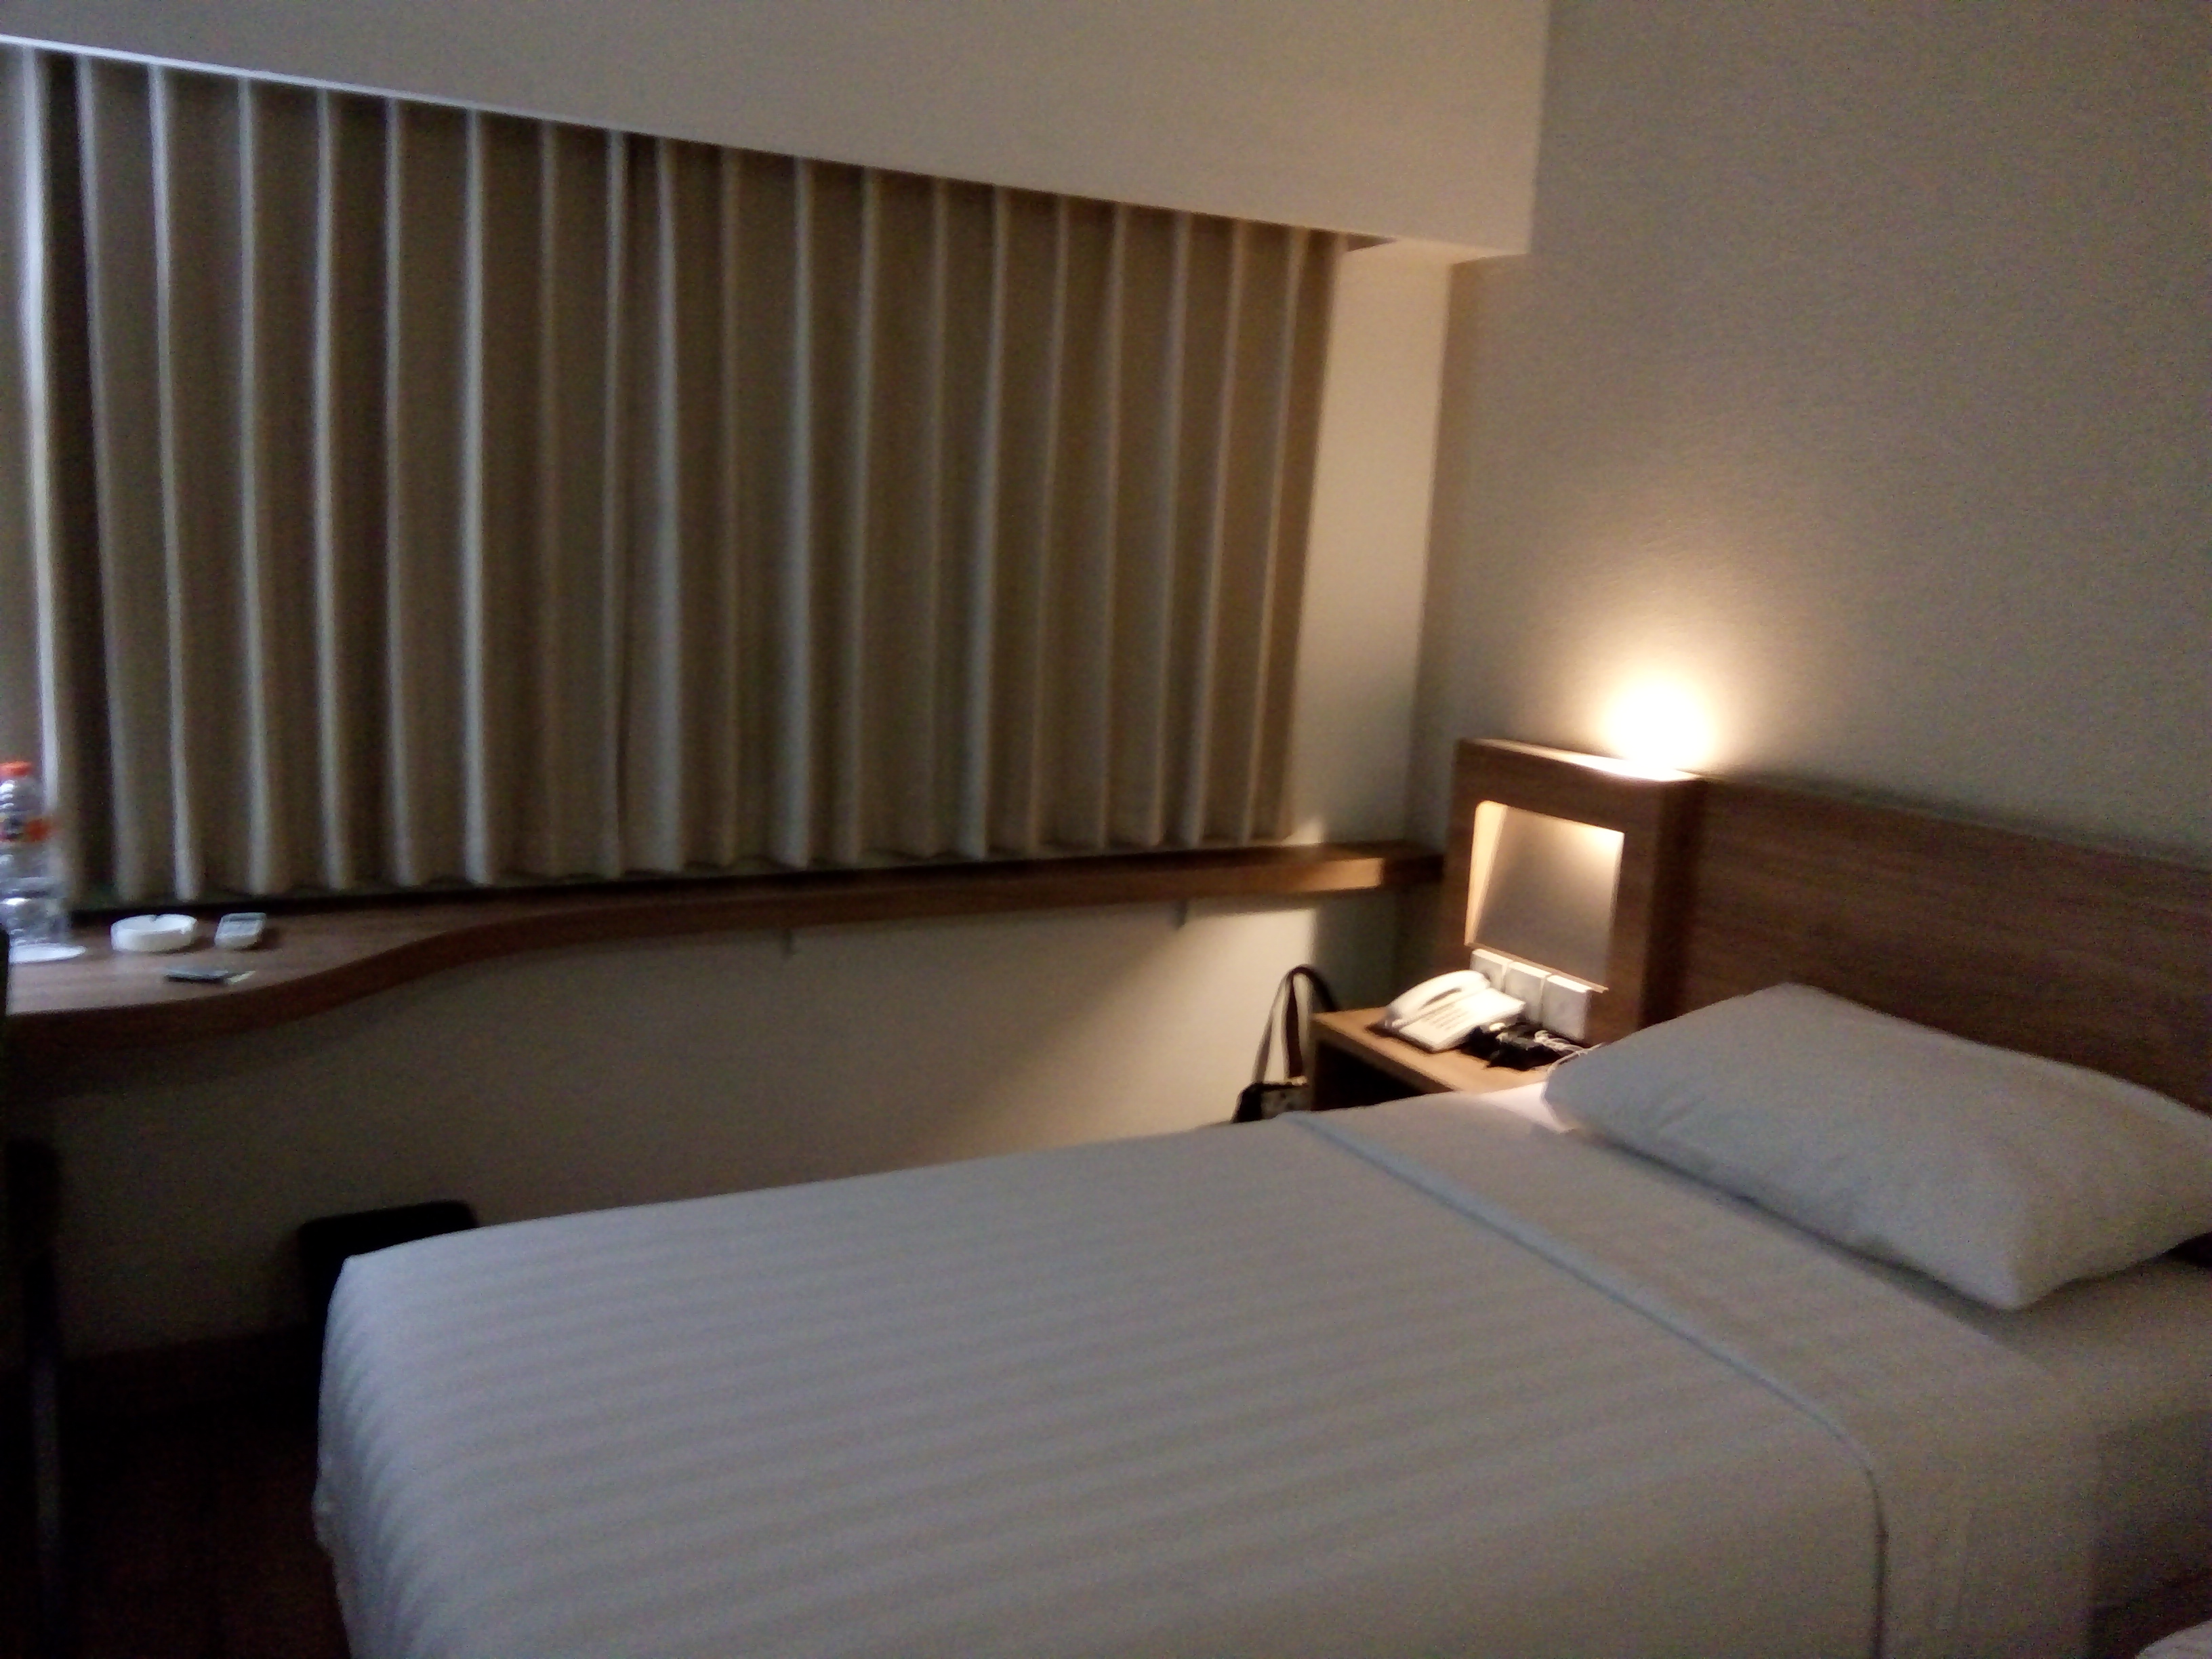 Whiz Hotel Cikini, Easy Access to Business Centers